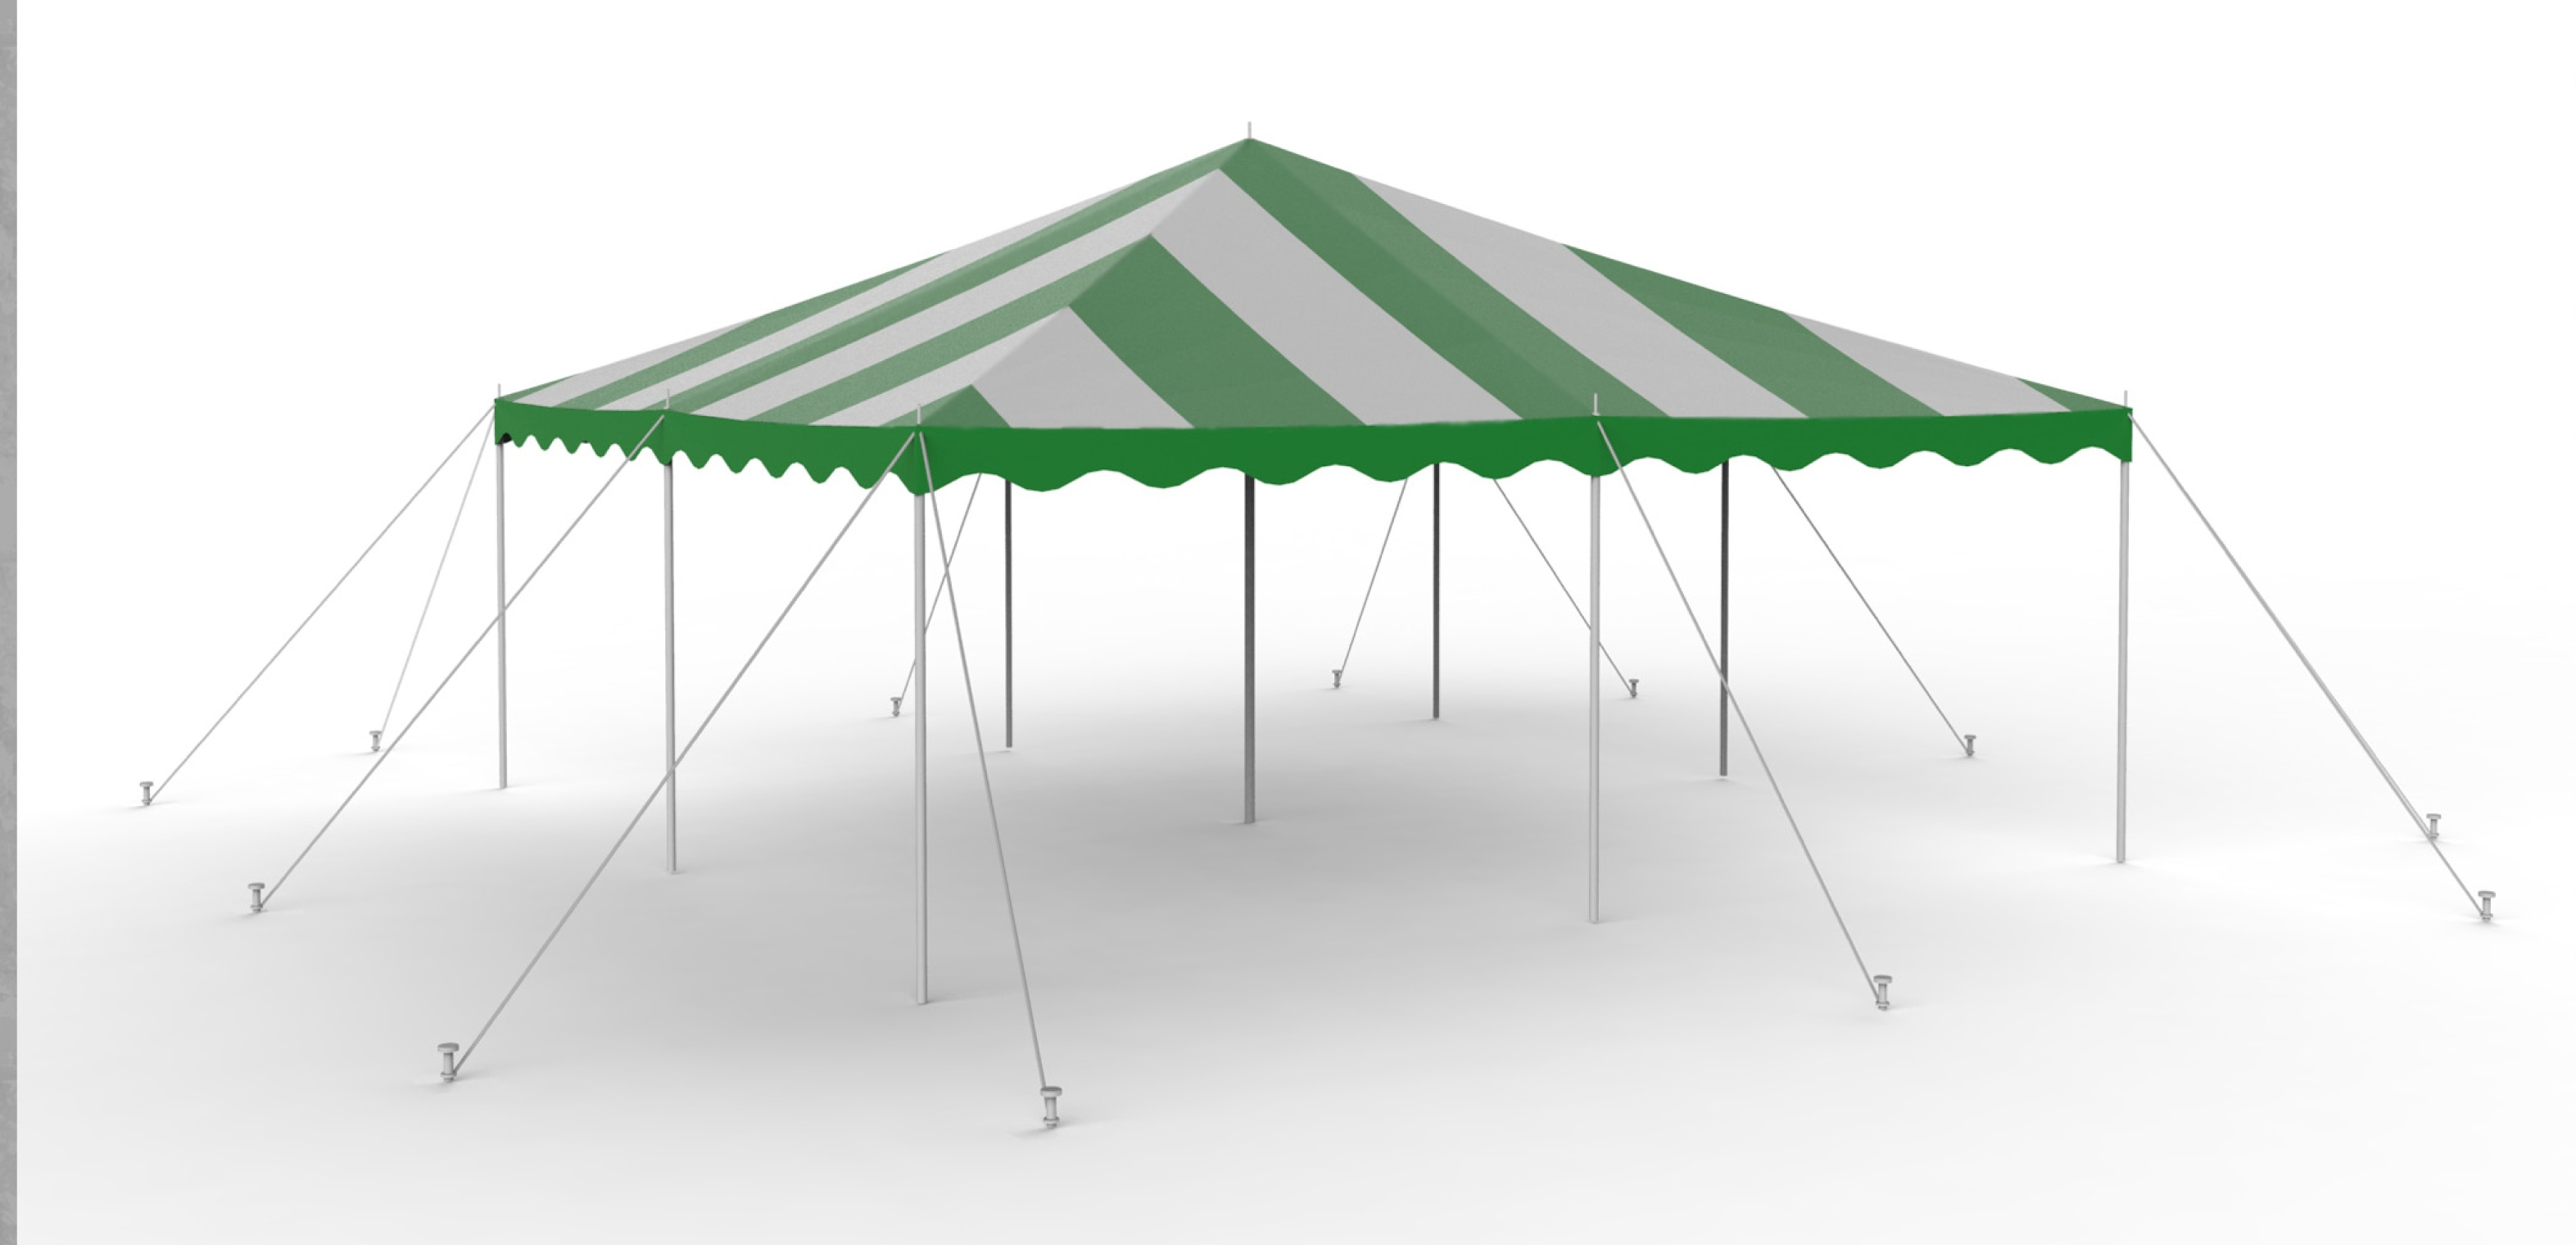 20x20 Green-White Staked Canopy